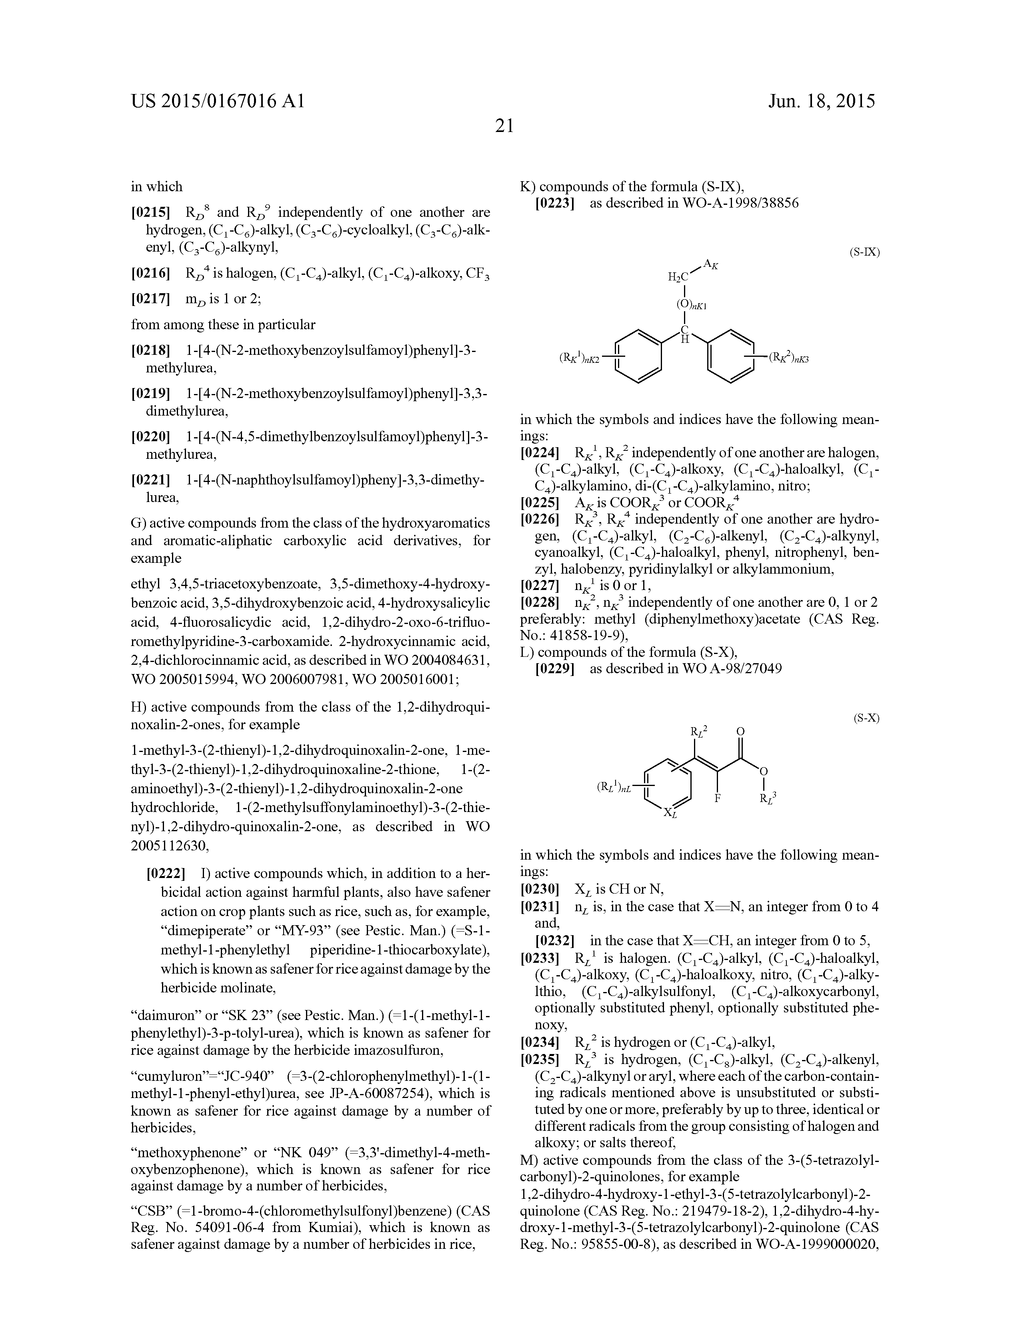 Plants Tolerant to HPPD Inhibitor Herbicides - diagram, schematic, and image 24